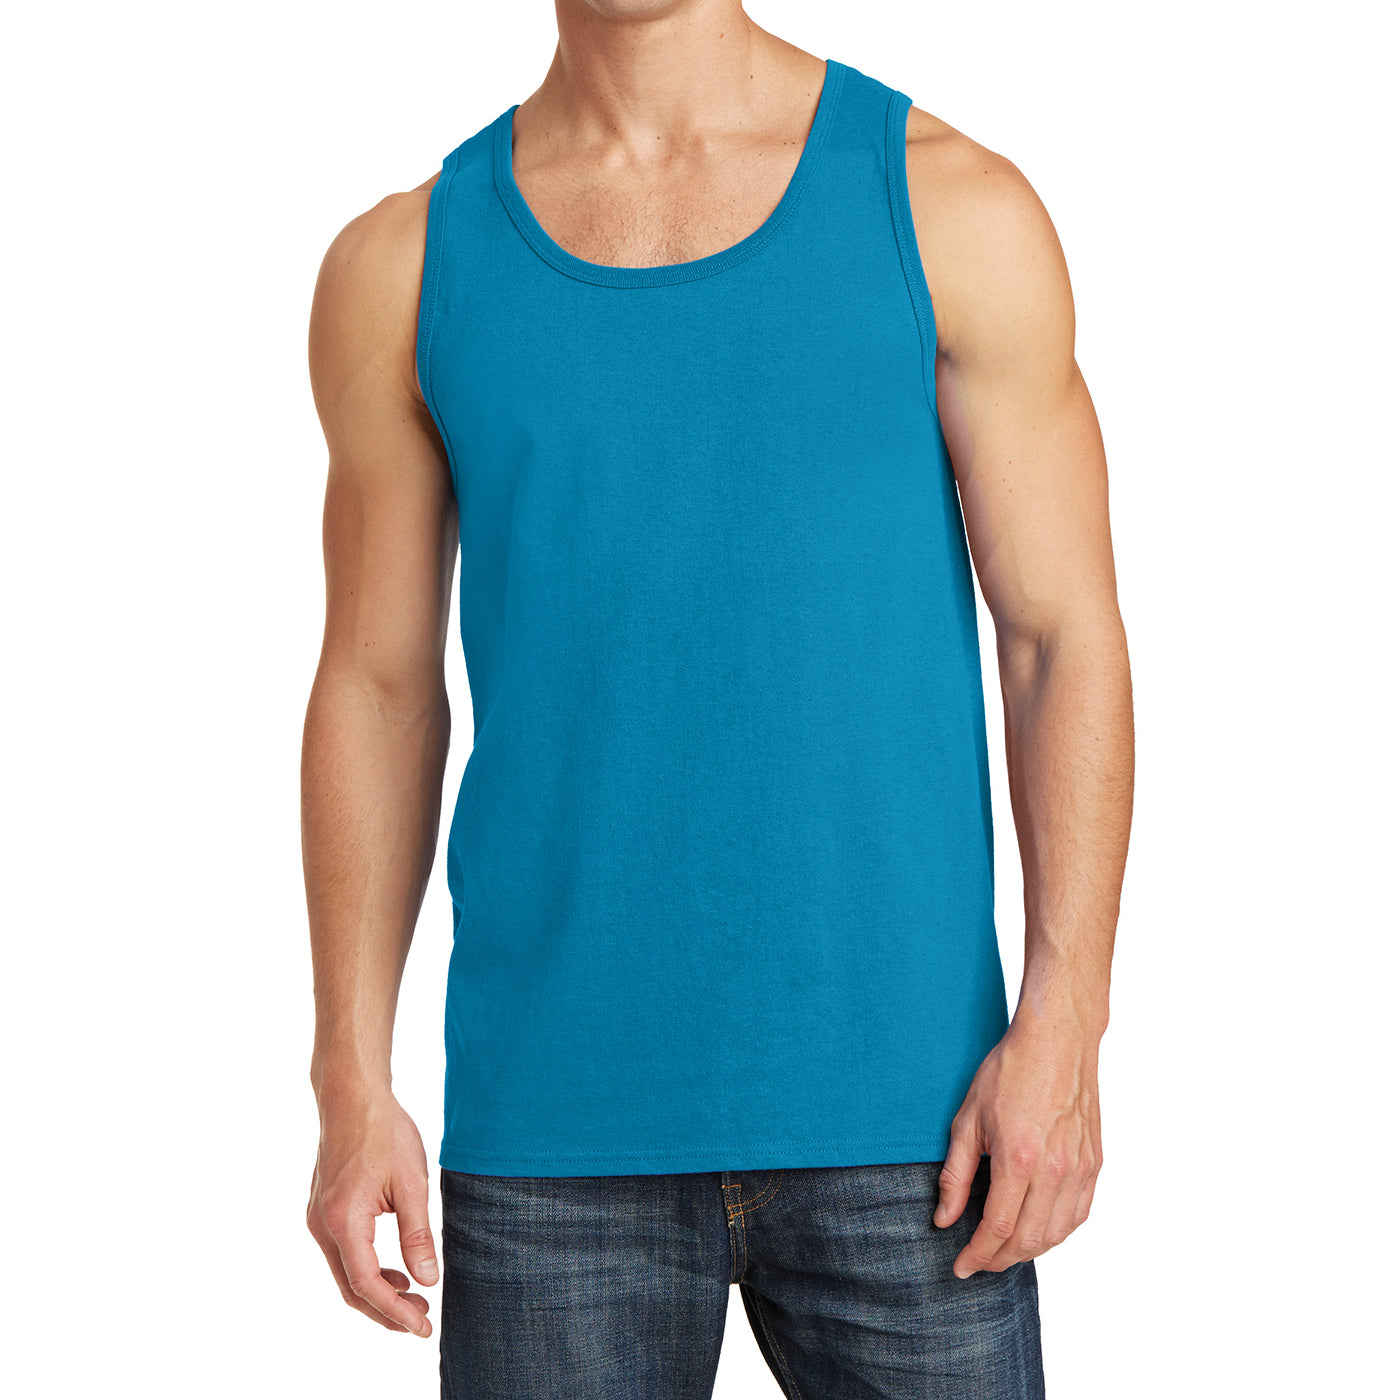 Men's Core Cotton Tank Top - Neon Blue - Front